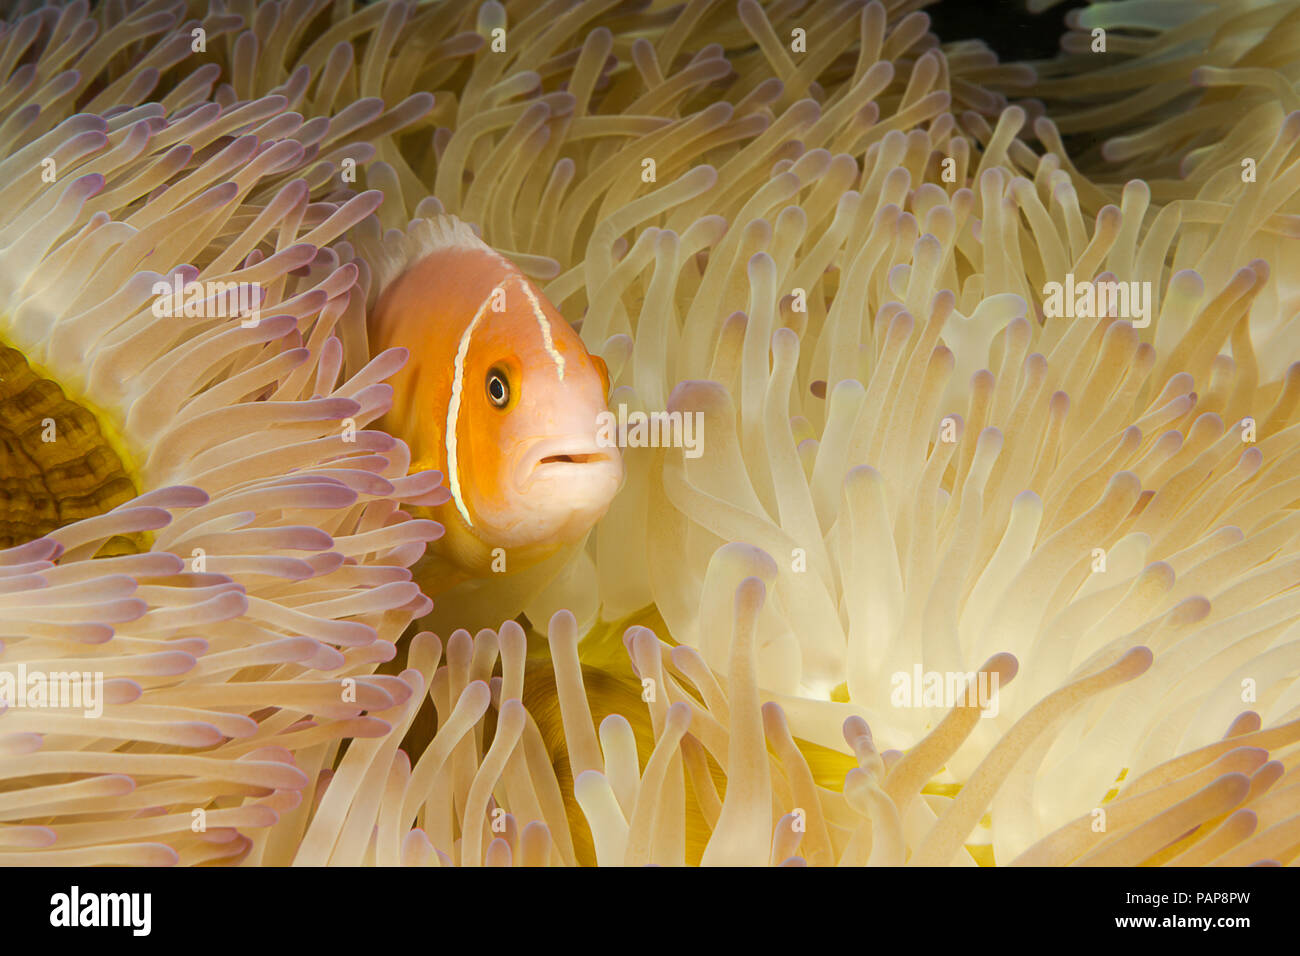 This common anemonefish, Amphiprion perideraion, is most often found associated with the anemone, Heteractis magnifica, as pictured here. Yap, Microne - Stock Image